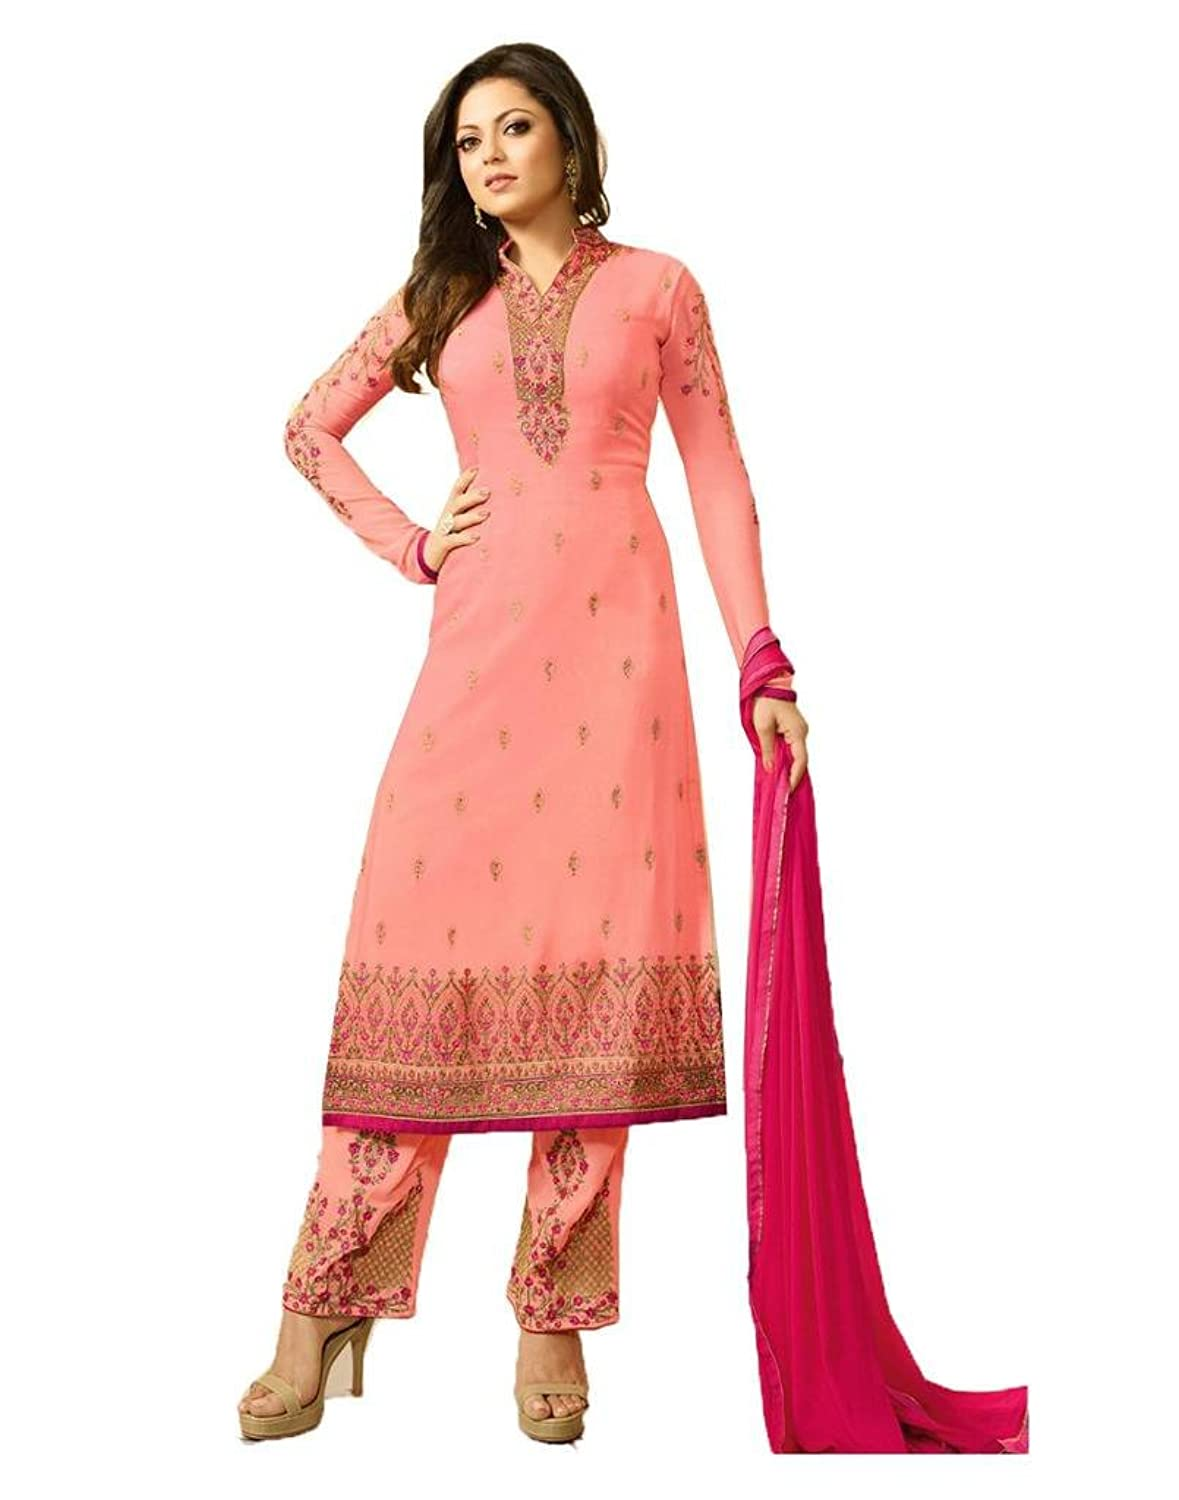 cc8c5b6936 SuitsOnDesigner Women's Clothing Dress material For Women Latest Designer  Wear Salwar Suit Collection In Latest suit Beautiful Bollywood Kurti For  Women ...